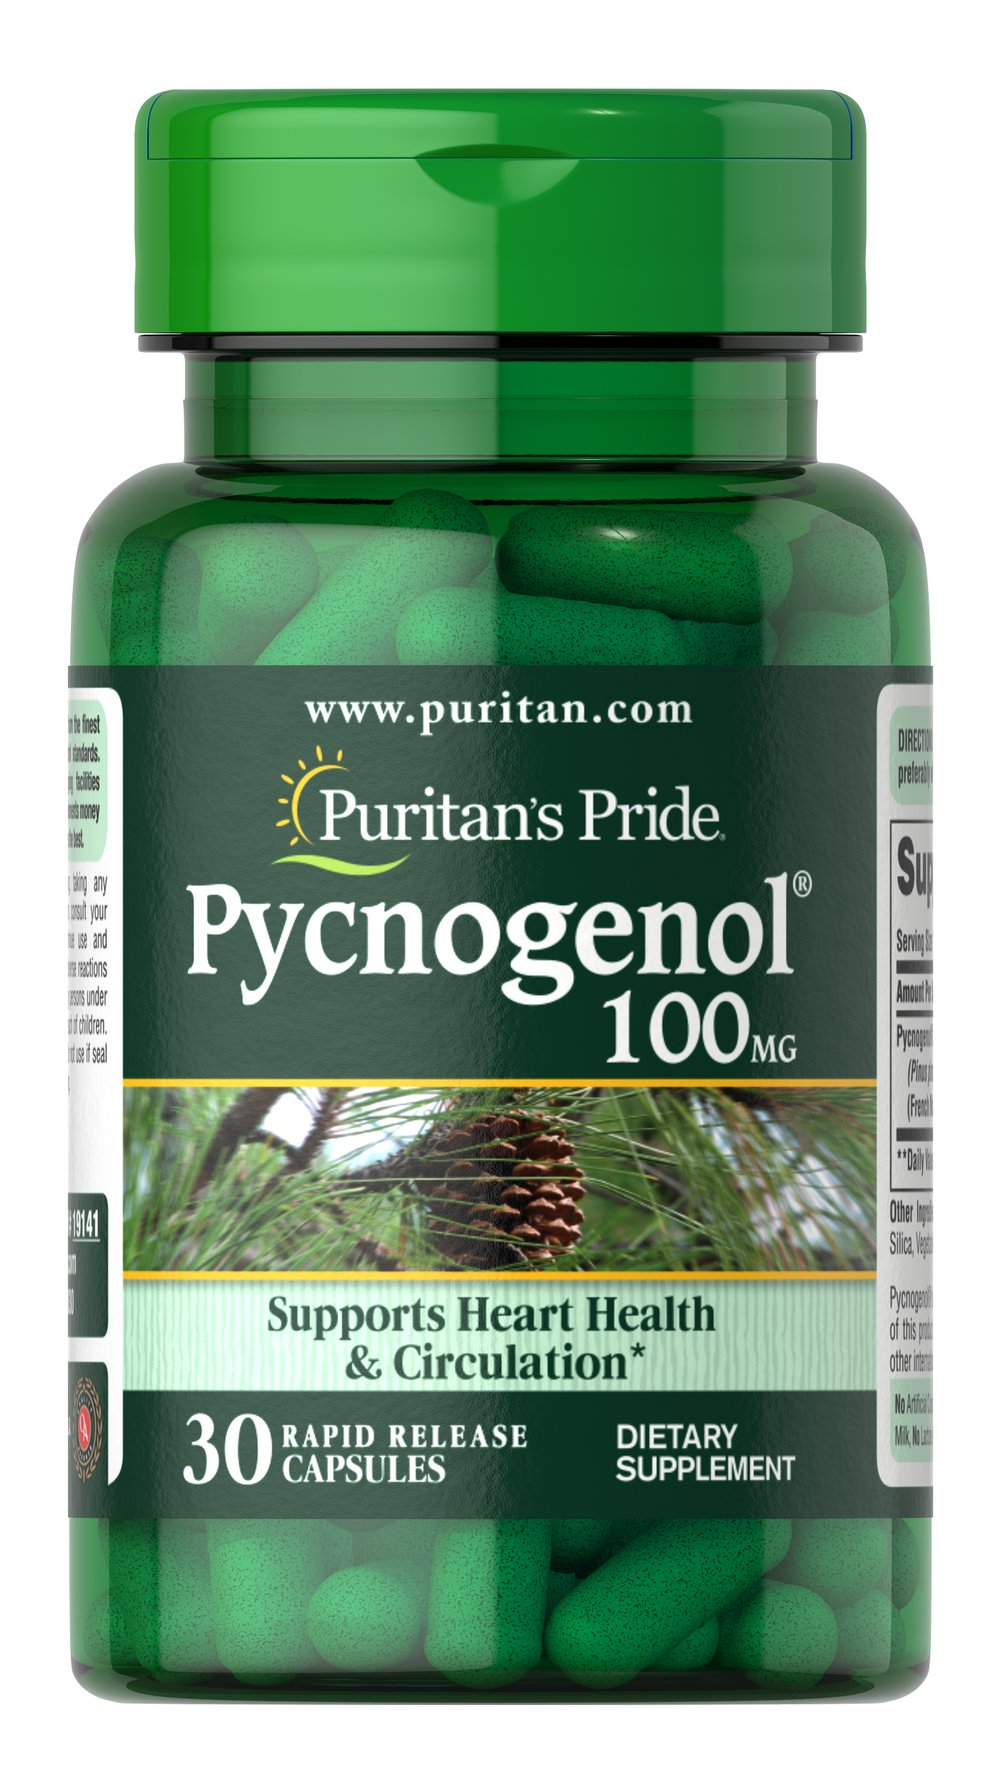 Pycnogenol® 100 mg <p>Provides powerful antioxidant support**</p><p>Supports healthy circulation and contributes to heart function**</p><p>May help with the occasional discomforts of PMS**</p><p>Aids with maintaining healthy skin**</p><p>Assists with eye health**</p><p>Helps maintain glucose levels already within a normal range**</p>  30 Capsules 100 mg $47.99